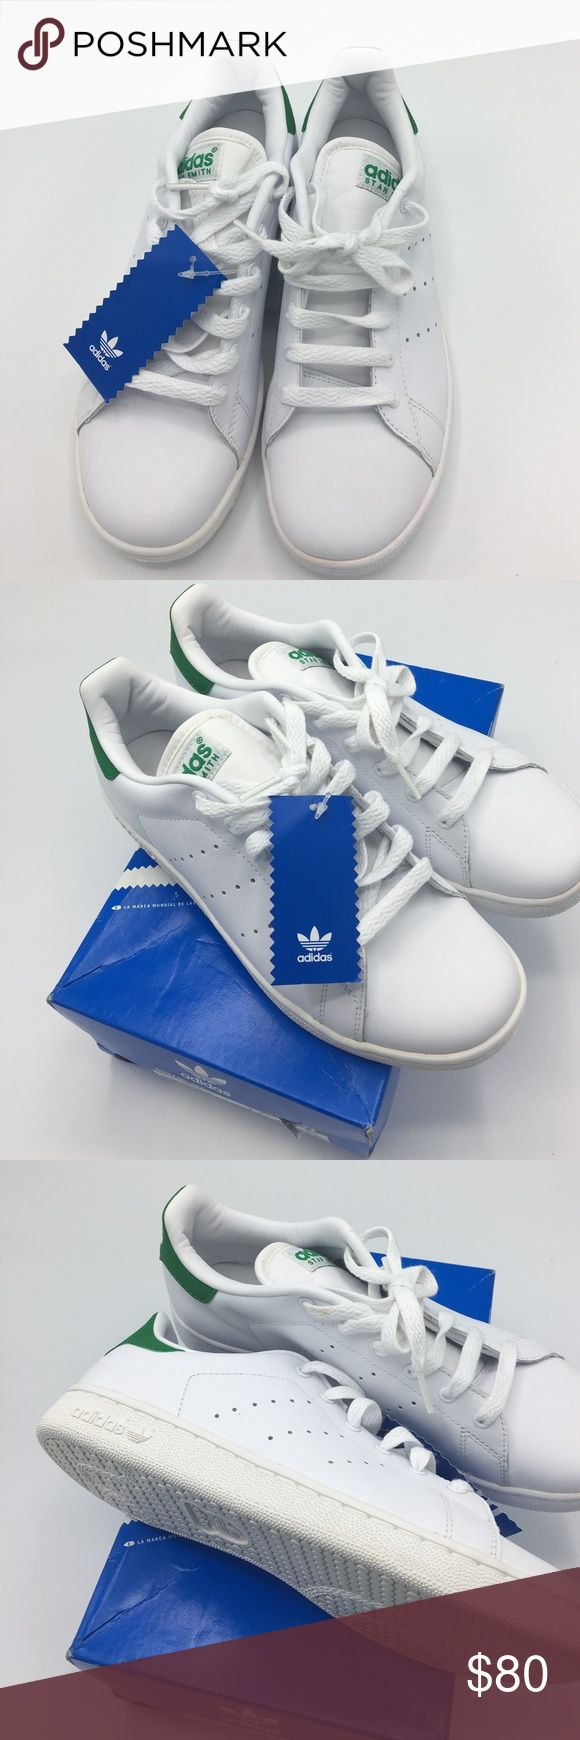 Adidas Stan Smith Adidas Stan Smith sneakers color classic green and white. Super cute and girly. New with tags size 6. 🚫🚫No low ball offers and no trades 🚫🚫 Adidas Shoes Sneakers